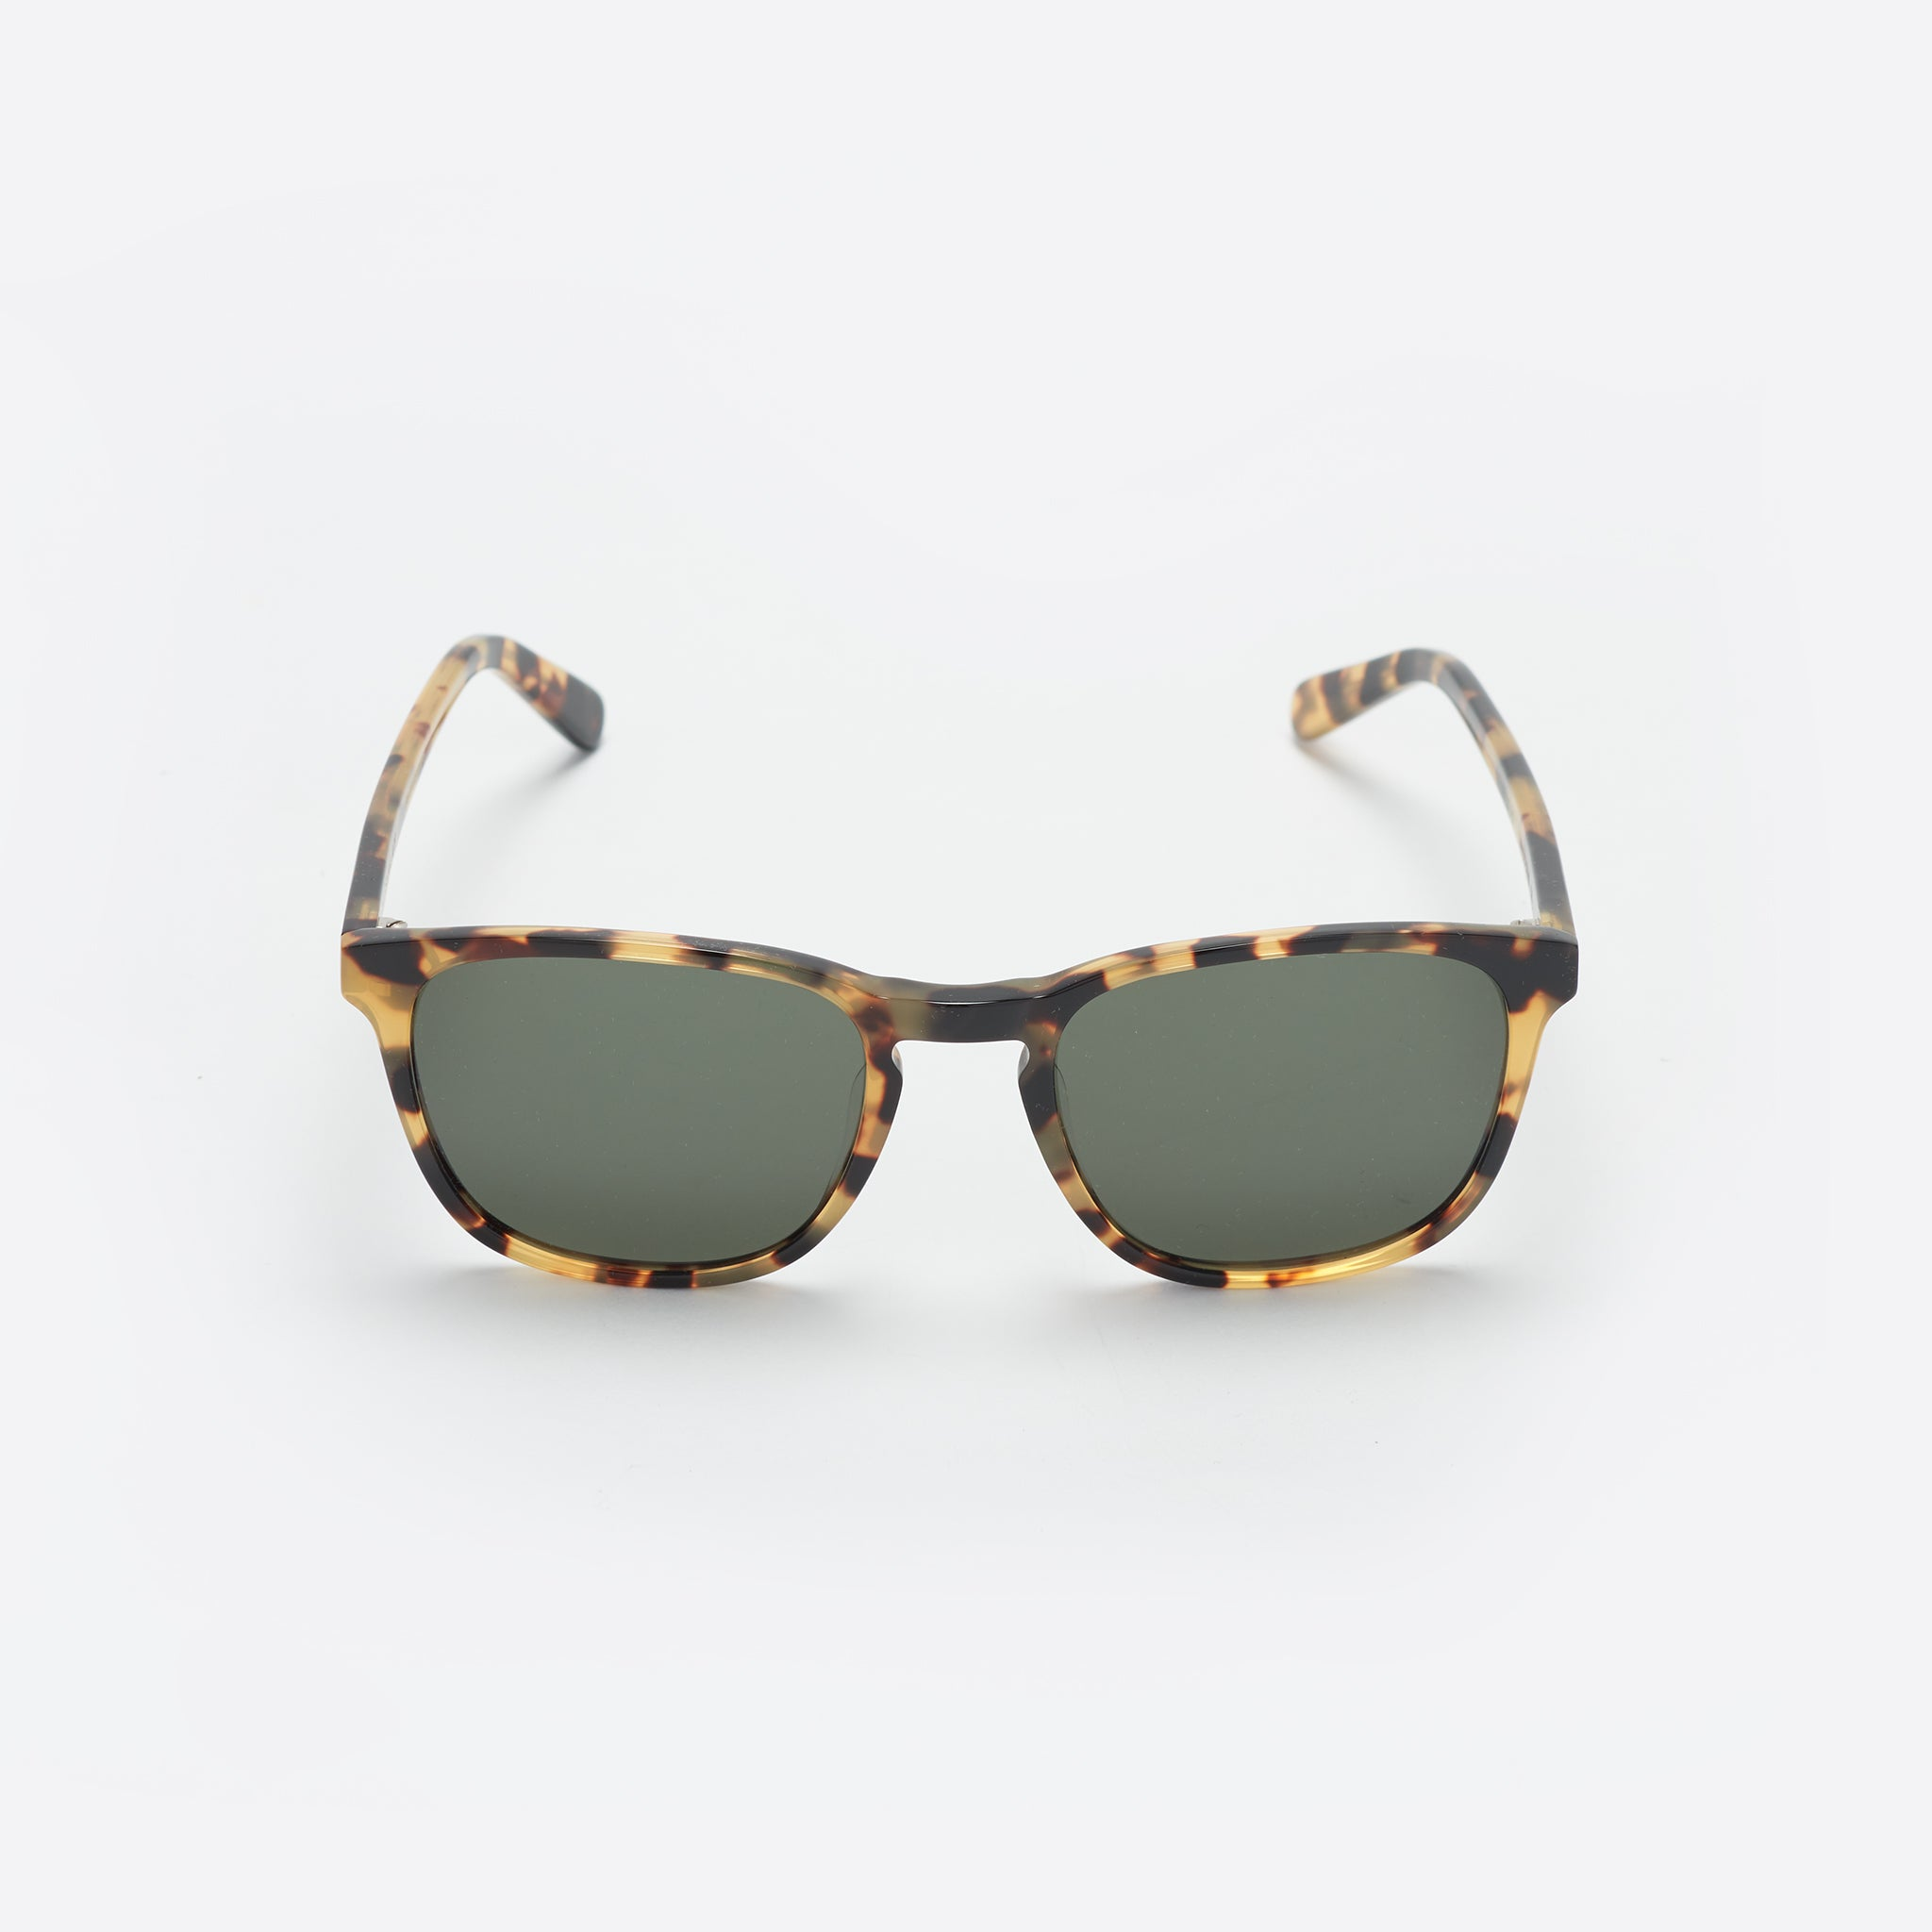 FINLAY London Bowery in Light Tortoise